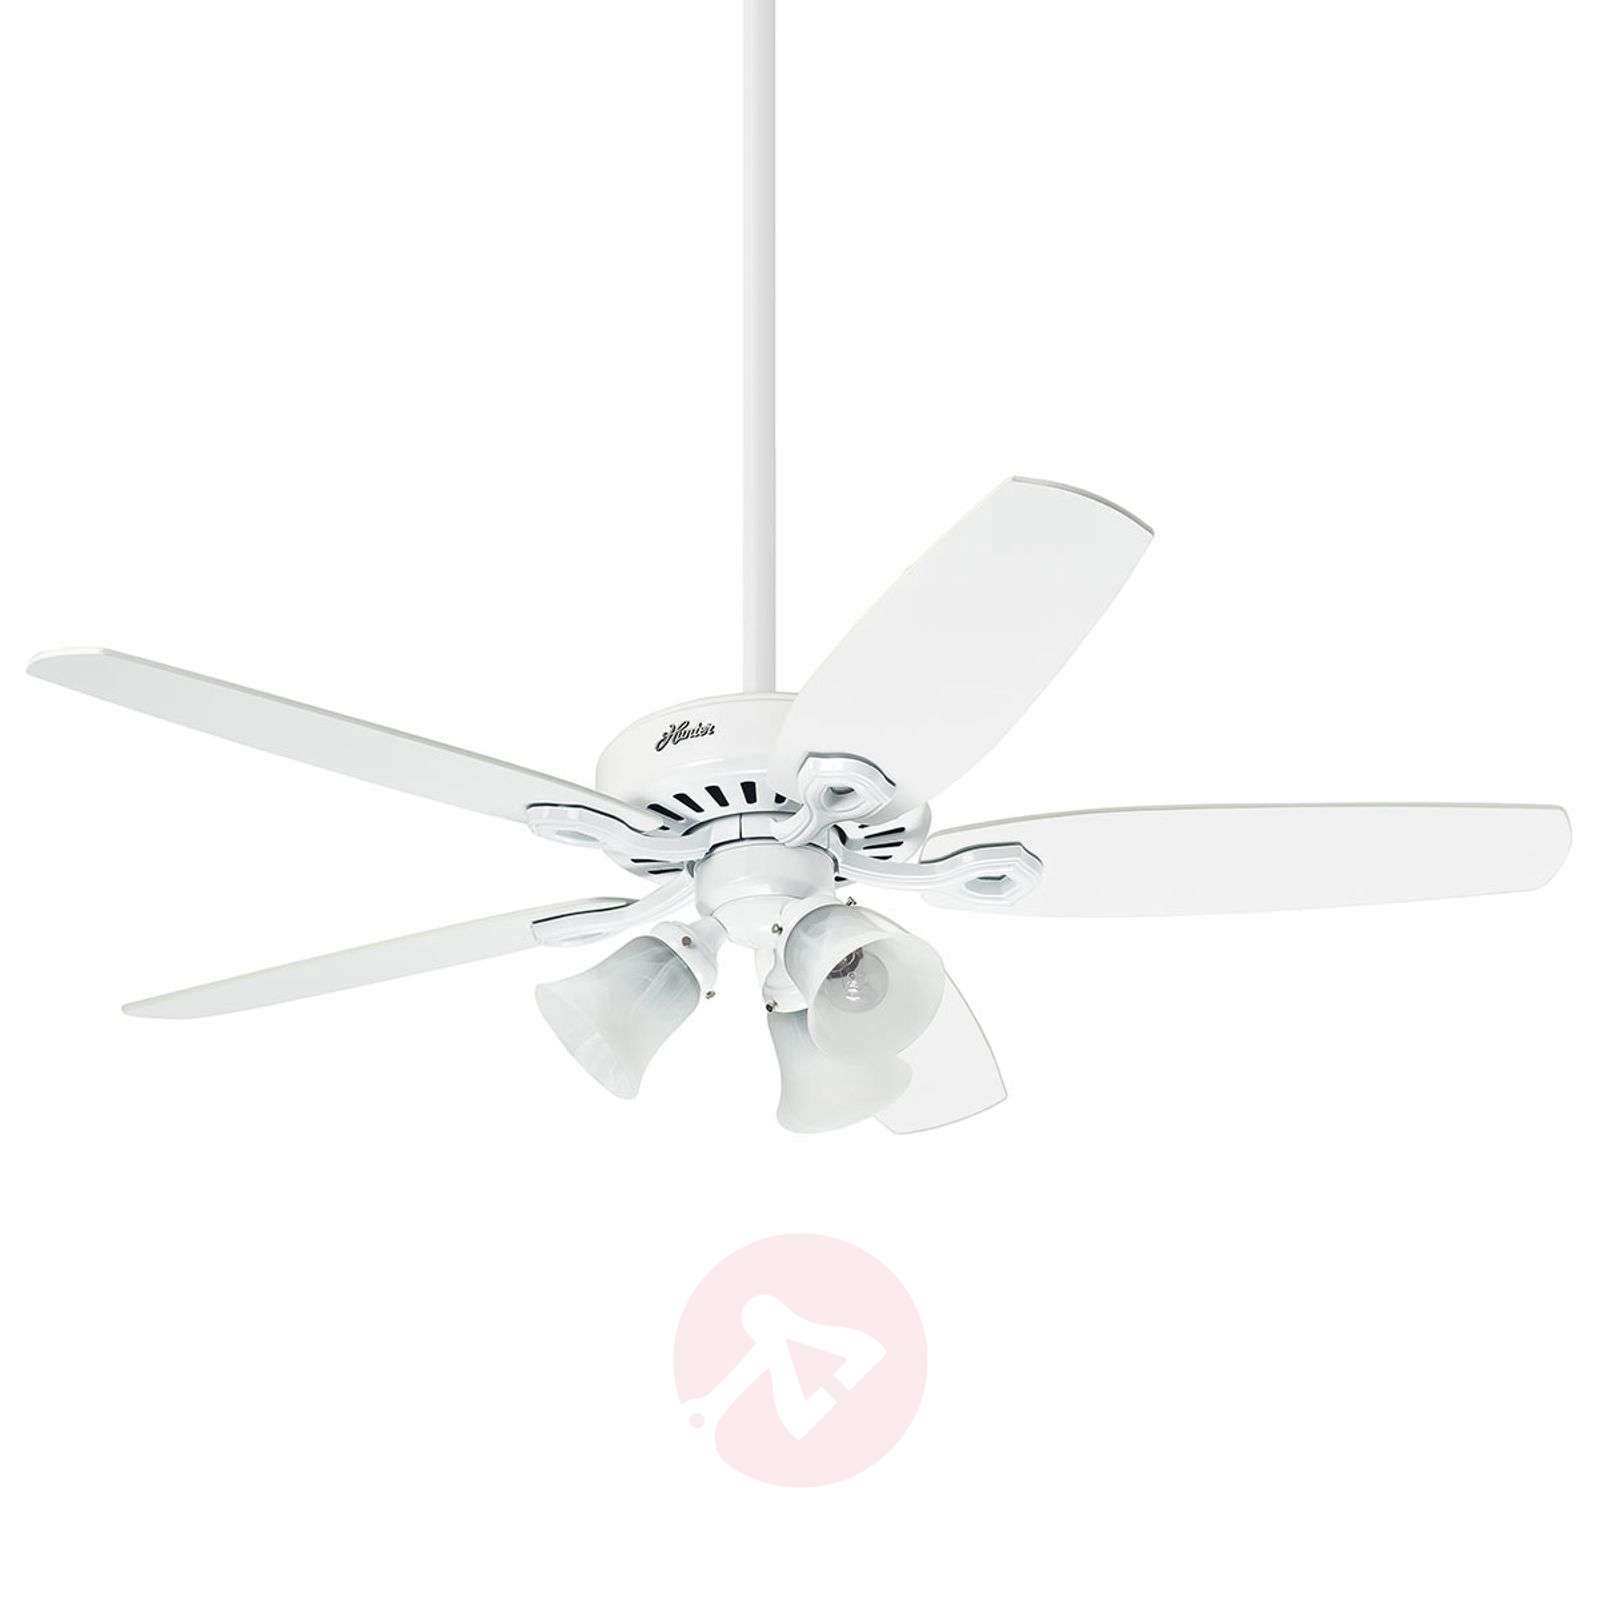 Hunter Builder Plus ventilateur de plafond blanc-4545010-01